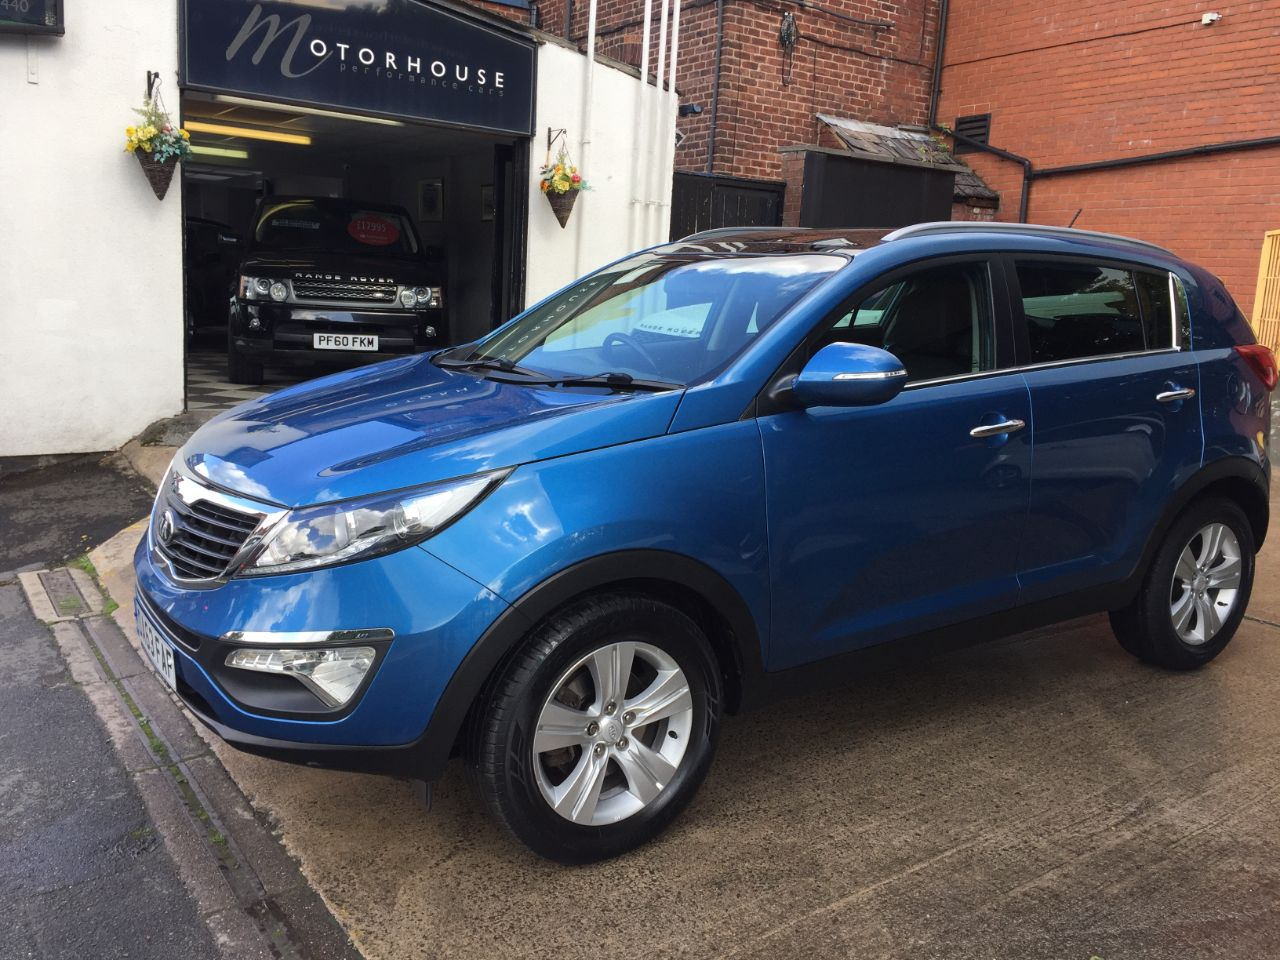 Kia Sportage 1.7 CRDi ISG 2 5dr Estate Diesel Blue at Motorhouse Cheshire Stockport